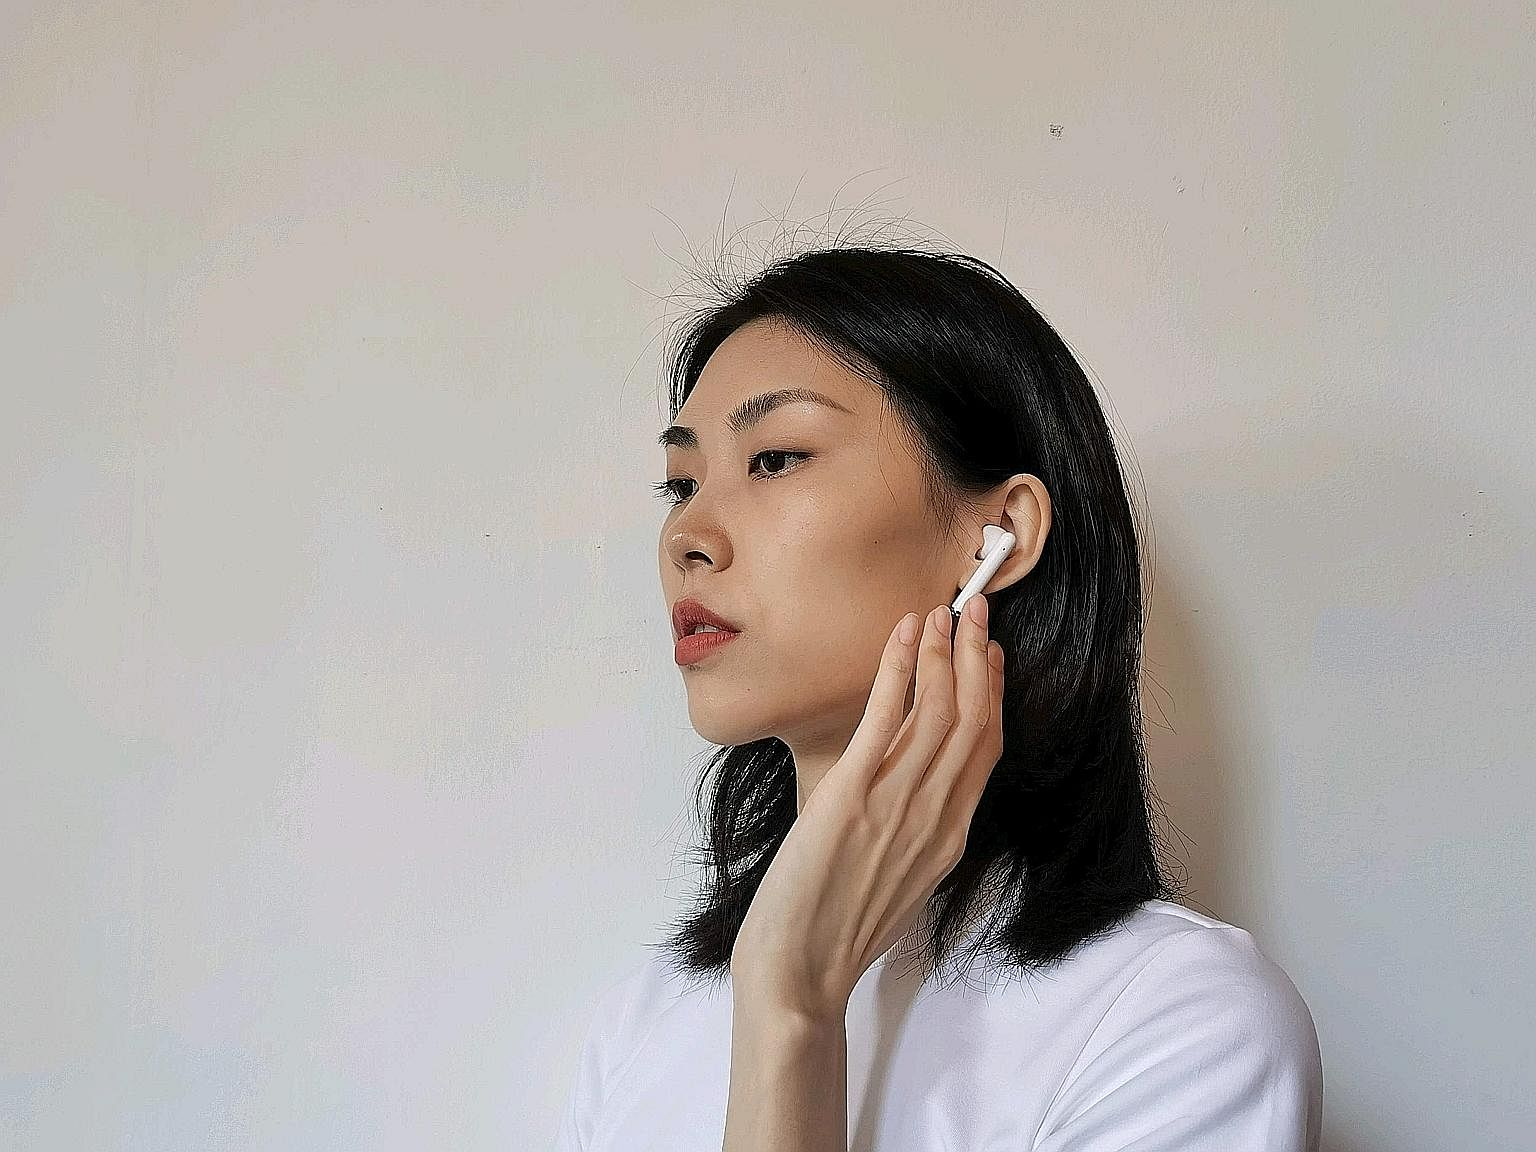 Freebuds 3 Airpods For Huawei Phones Audio News Top Stories